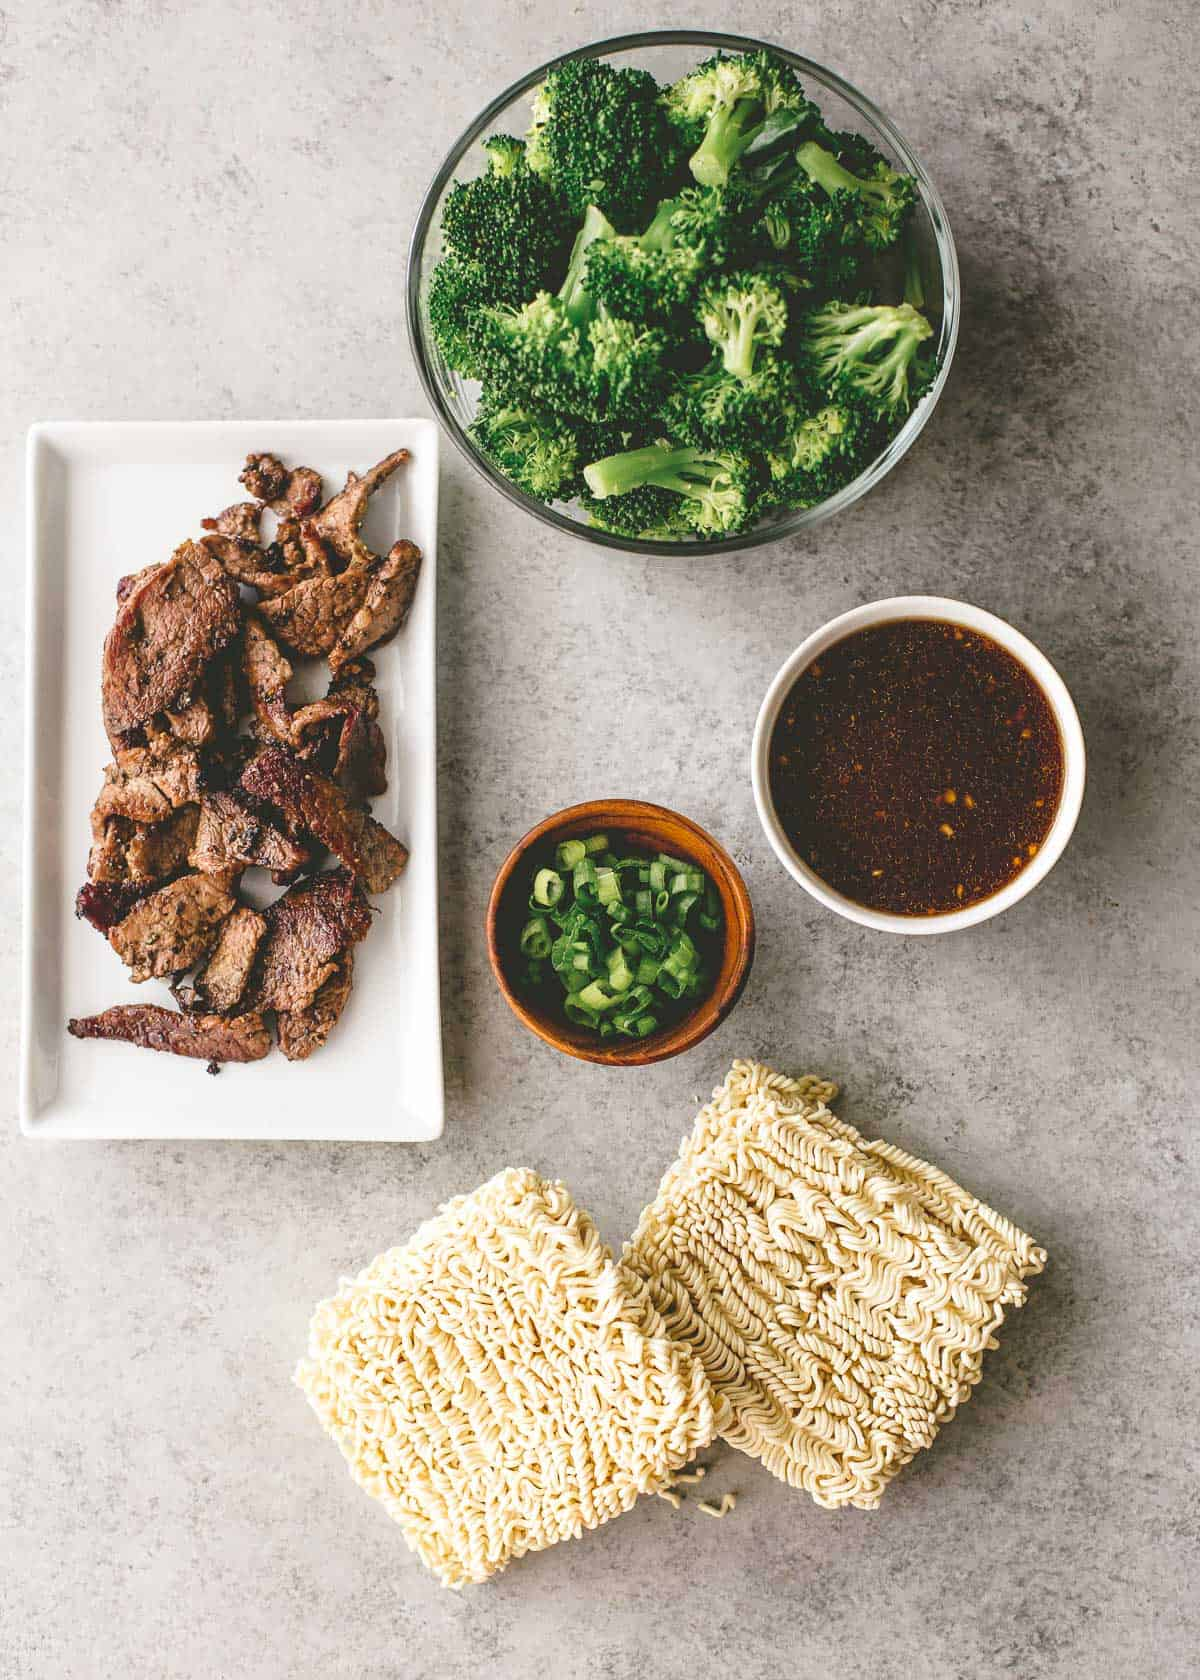 ingredients for beef and broccoli stir fry on a grey counter